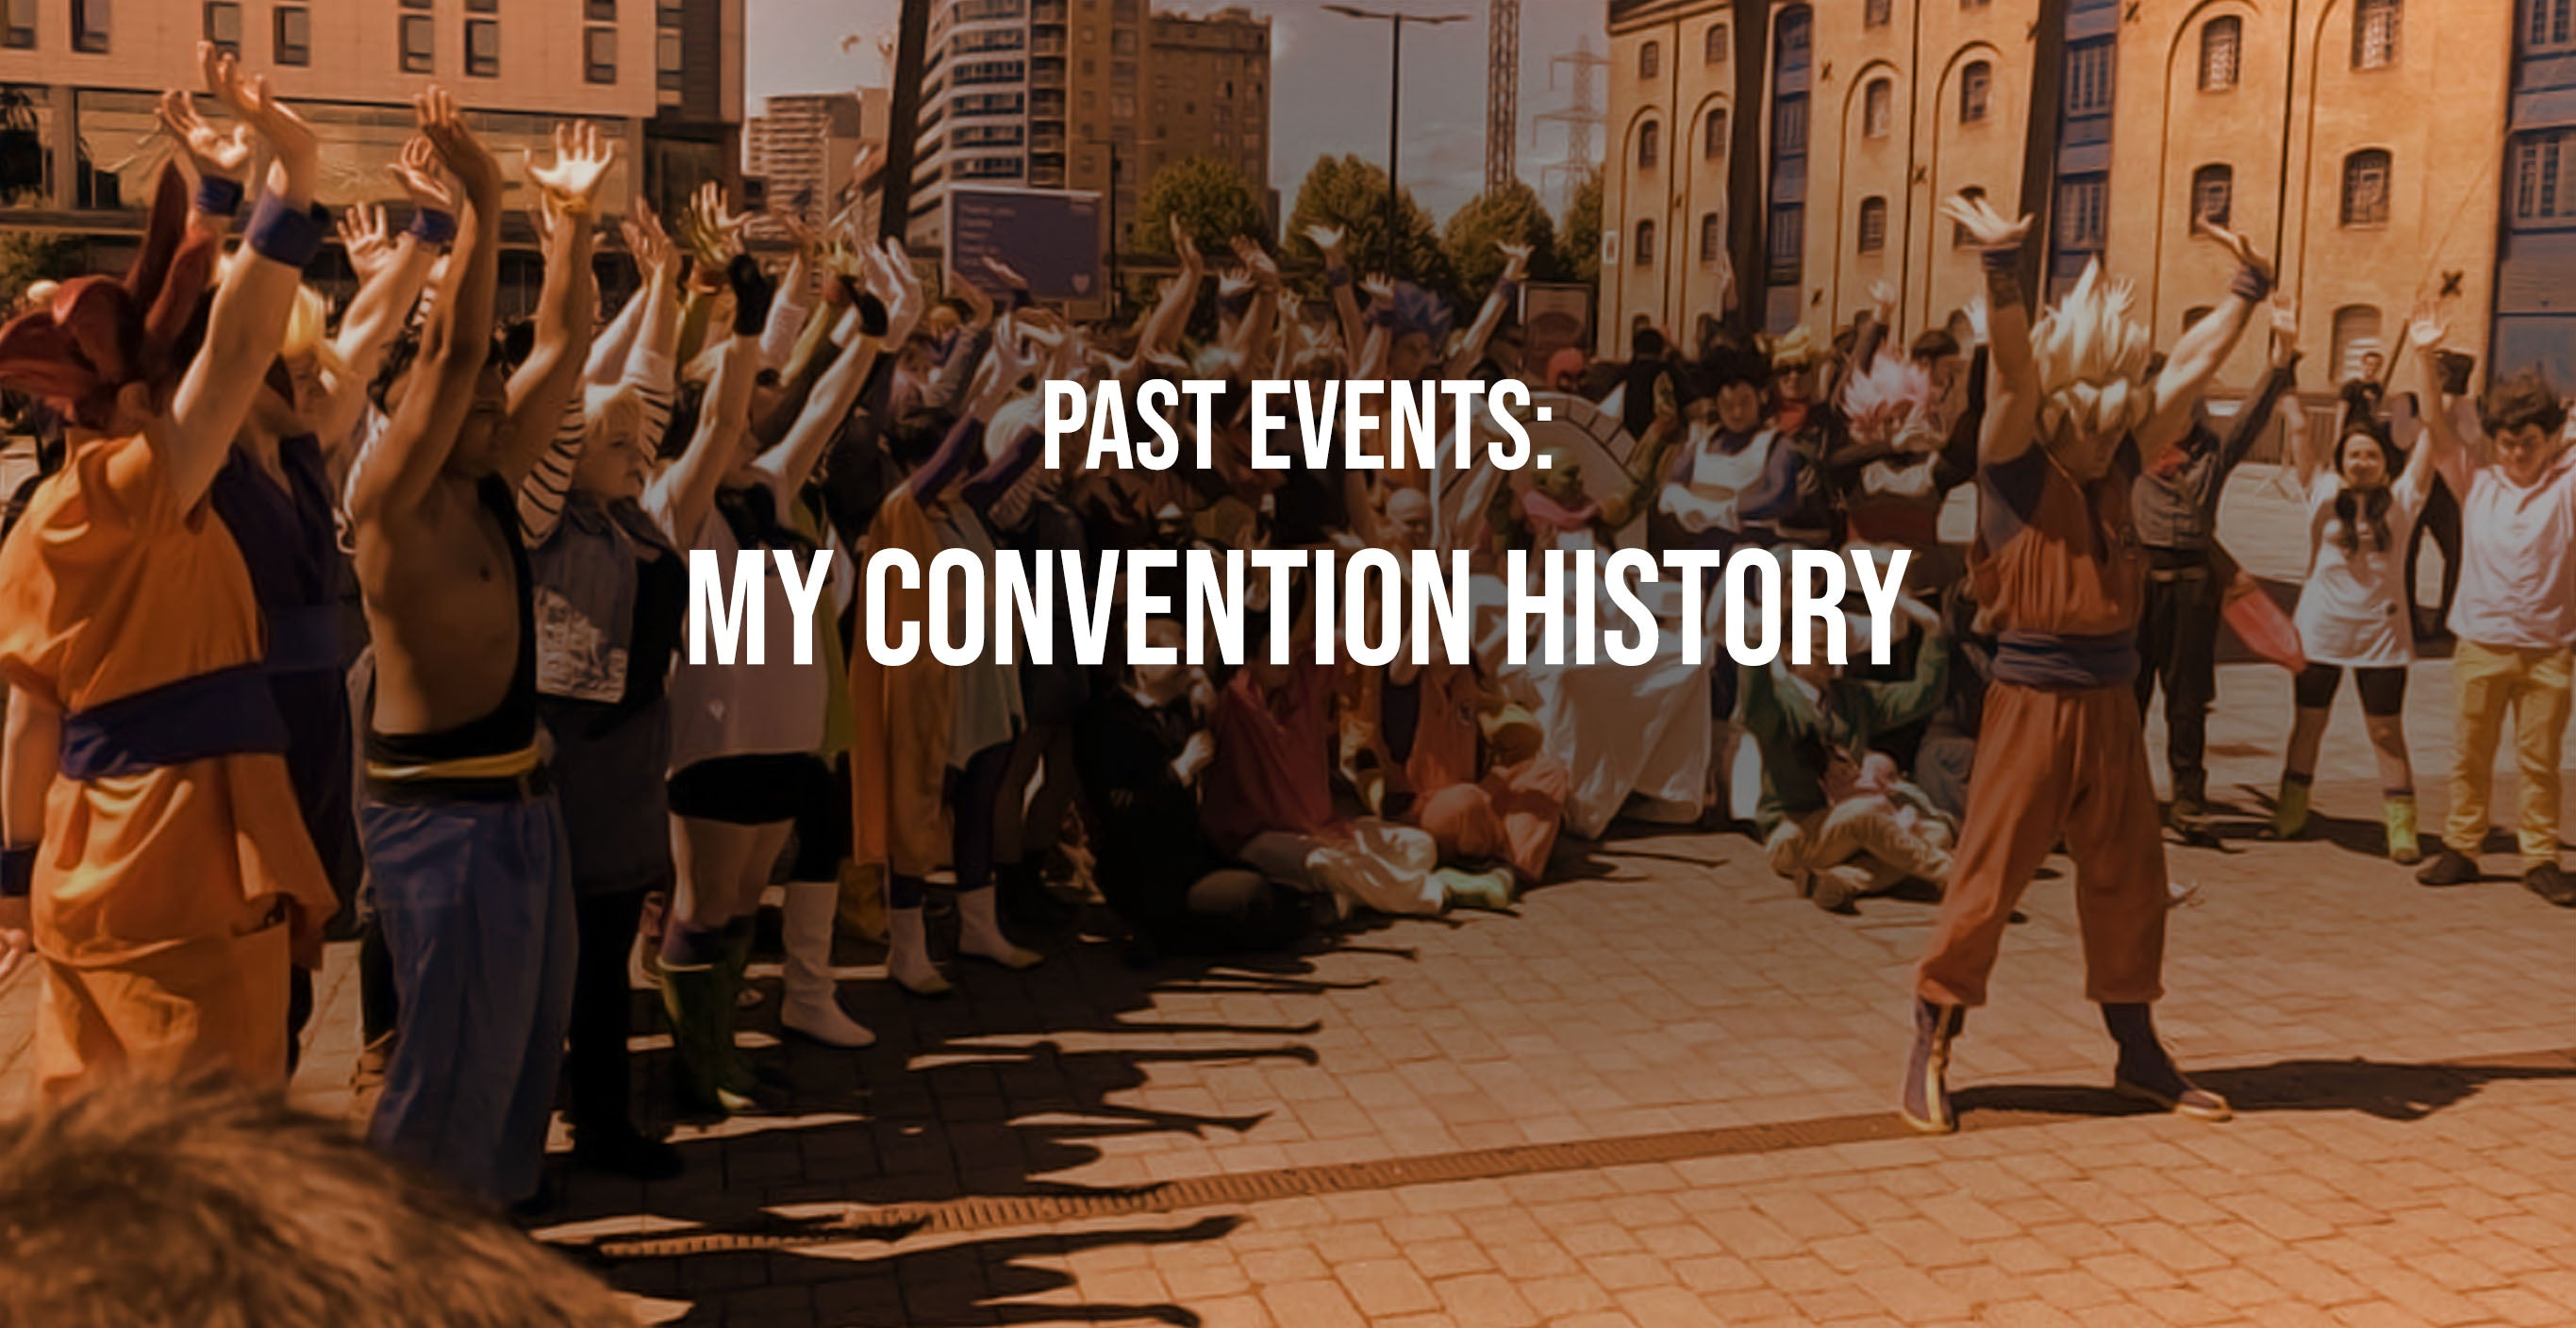 The convention history of Chris 'Cosplay' Minney of Be More Shonen